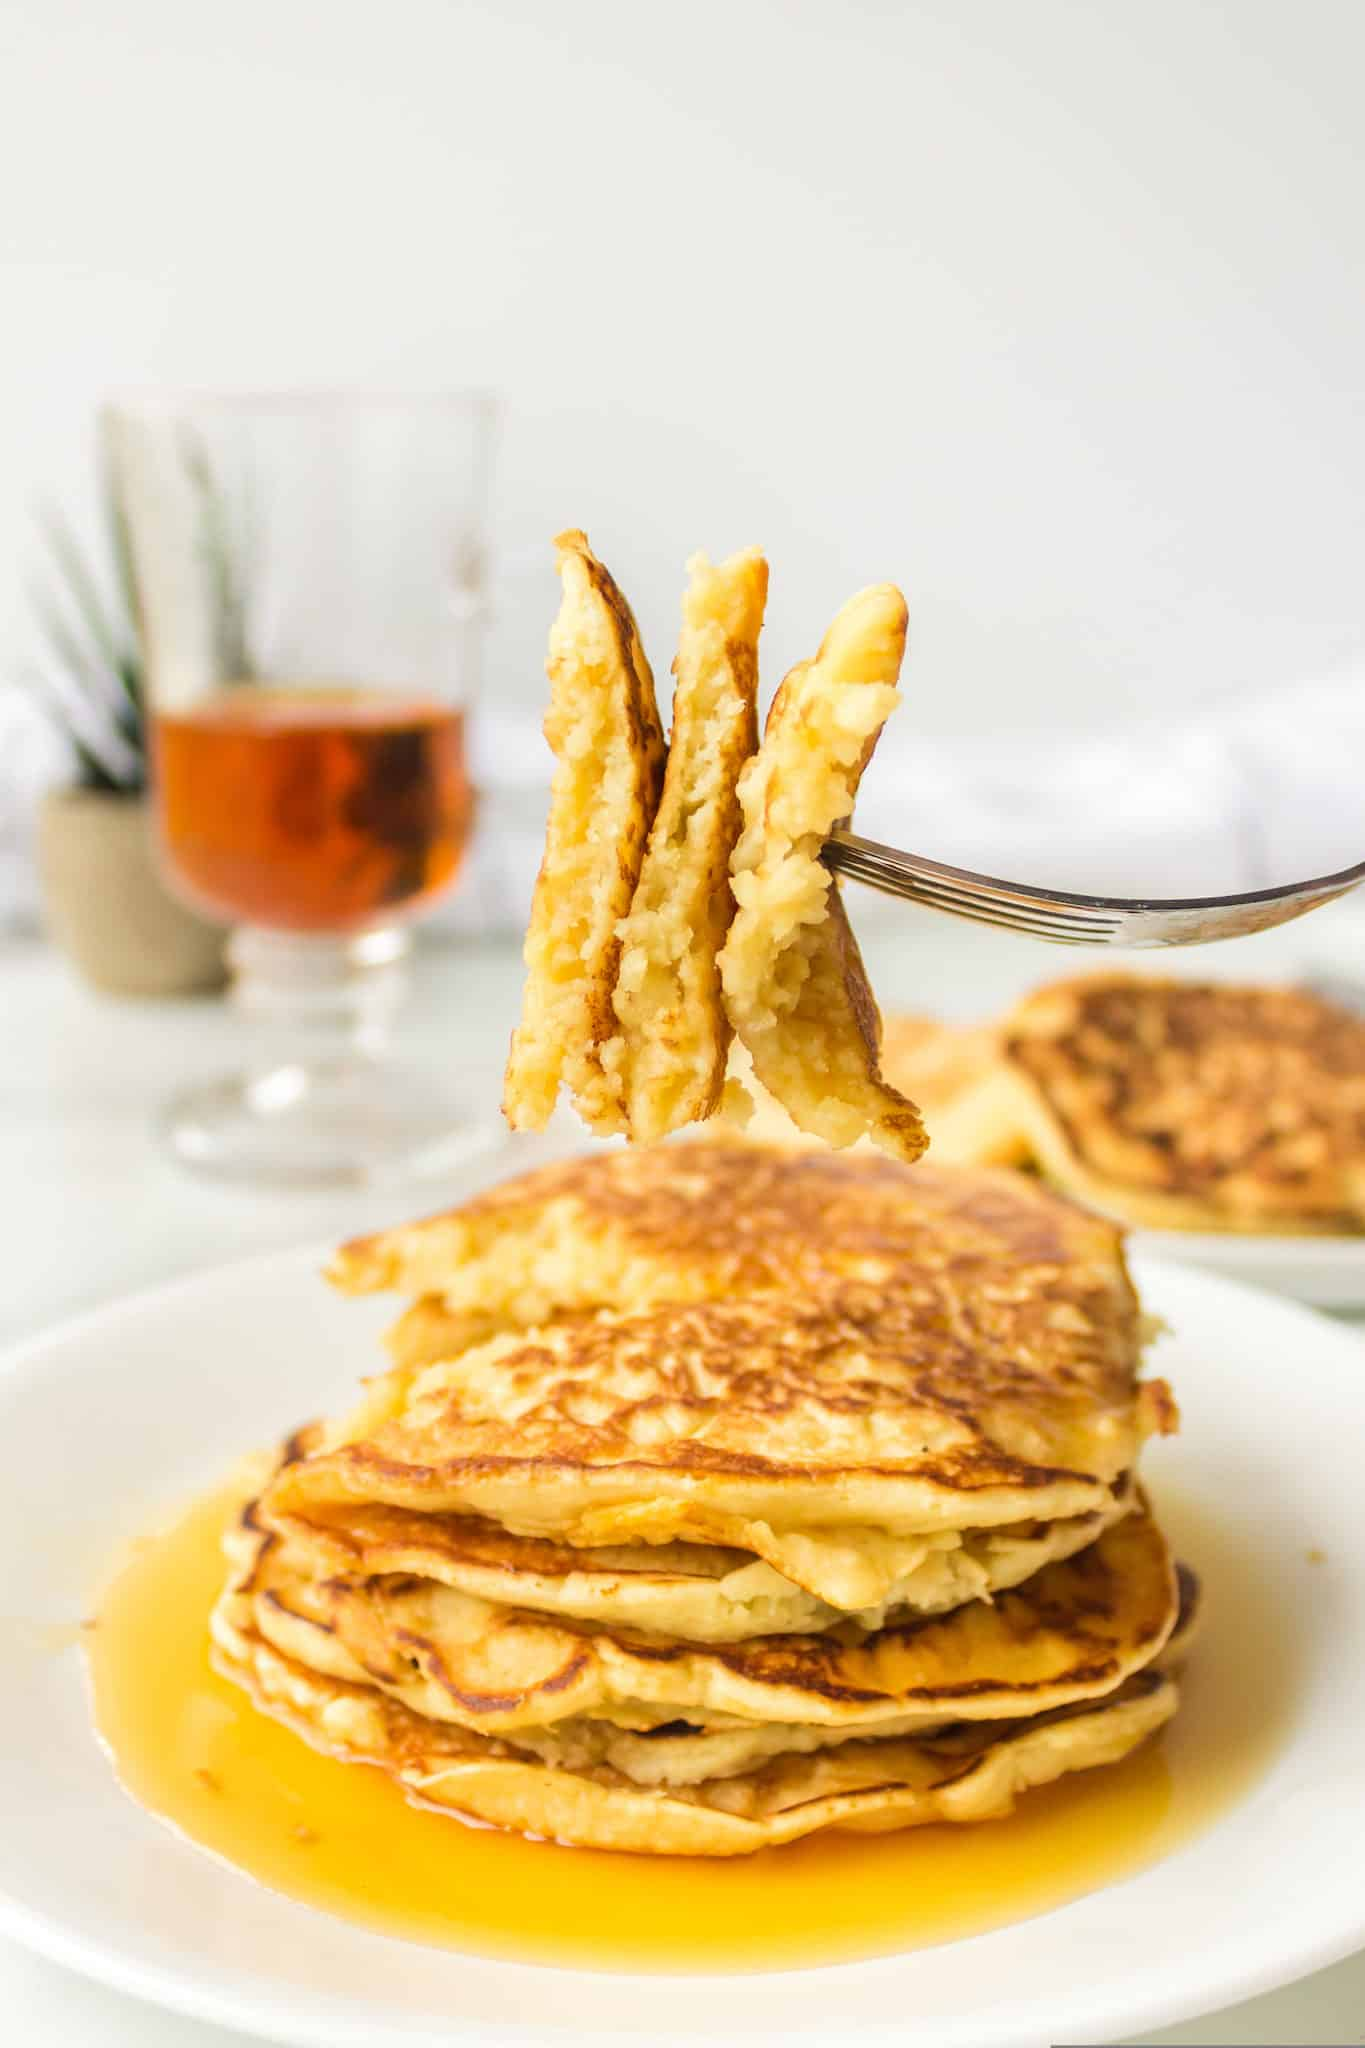 A forkful of pancakes